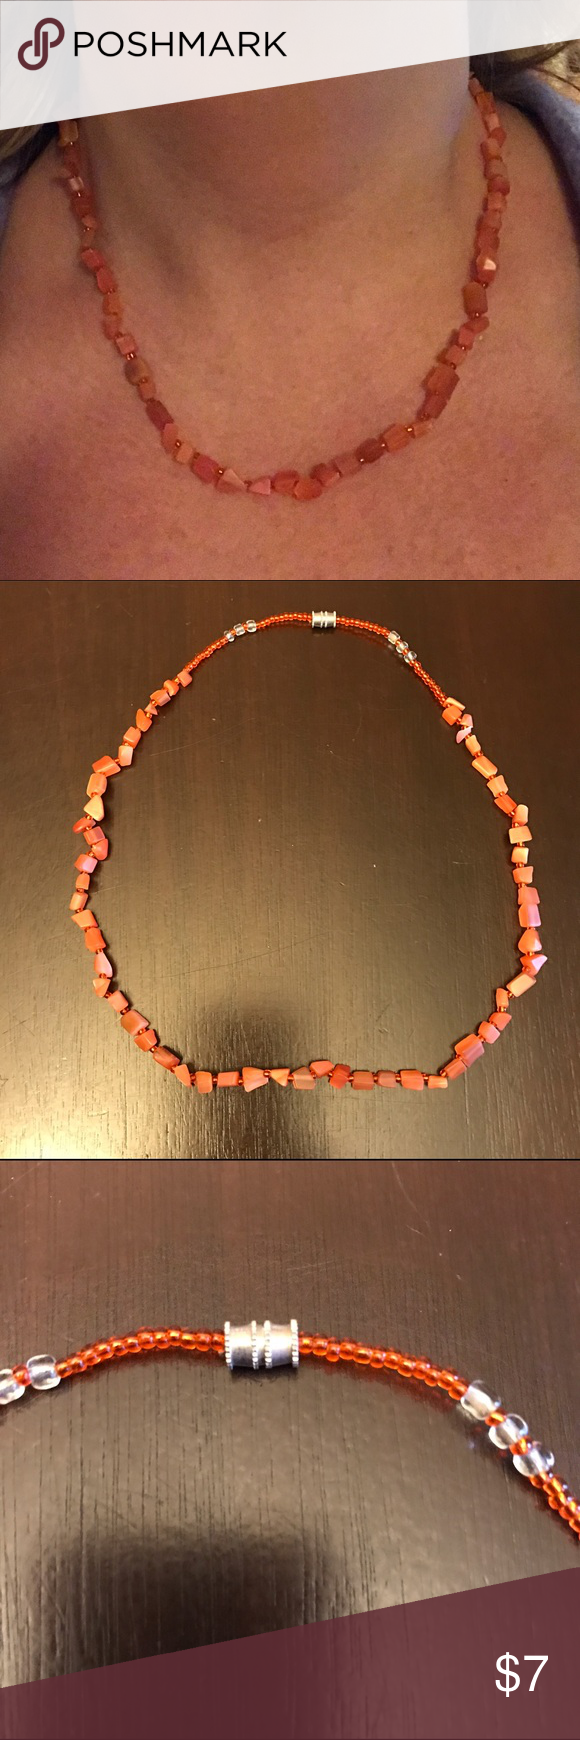 Beautiful beaded coral colored necklace Very nice necklace for summer . Worn once , it's coral colored and about 18 1/2 inches in overall length . Twist closure Jewelry Necklaces